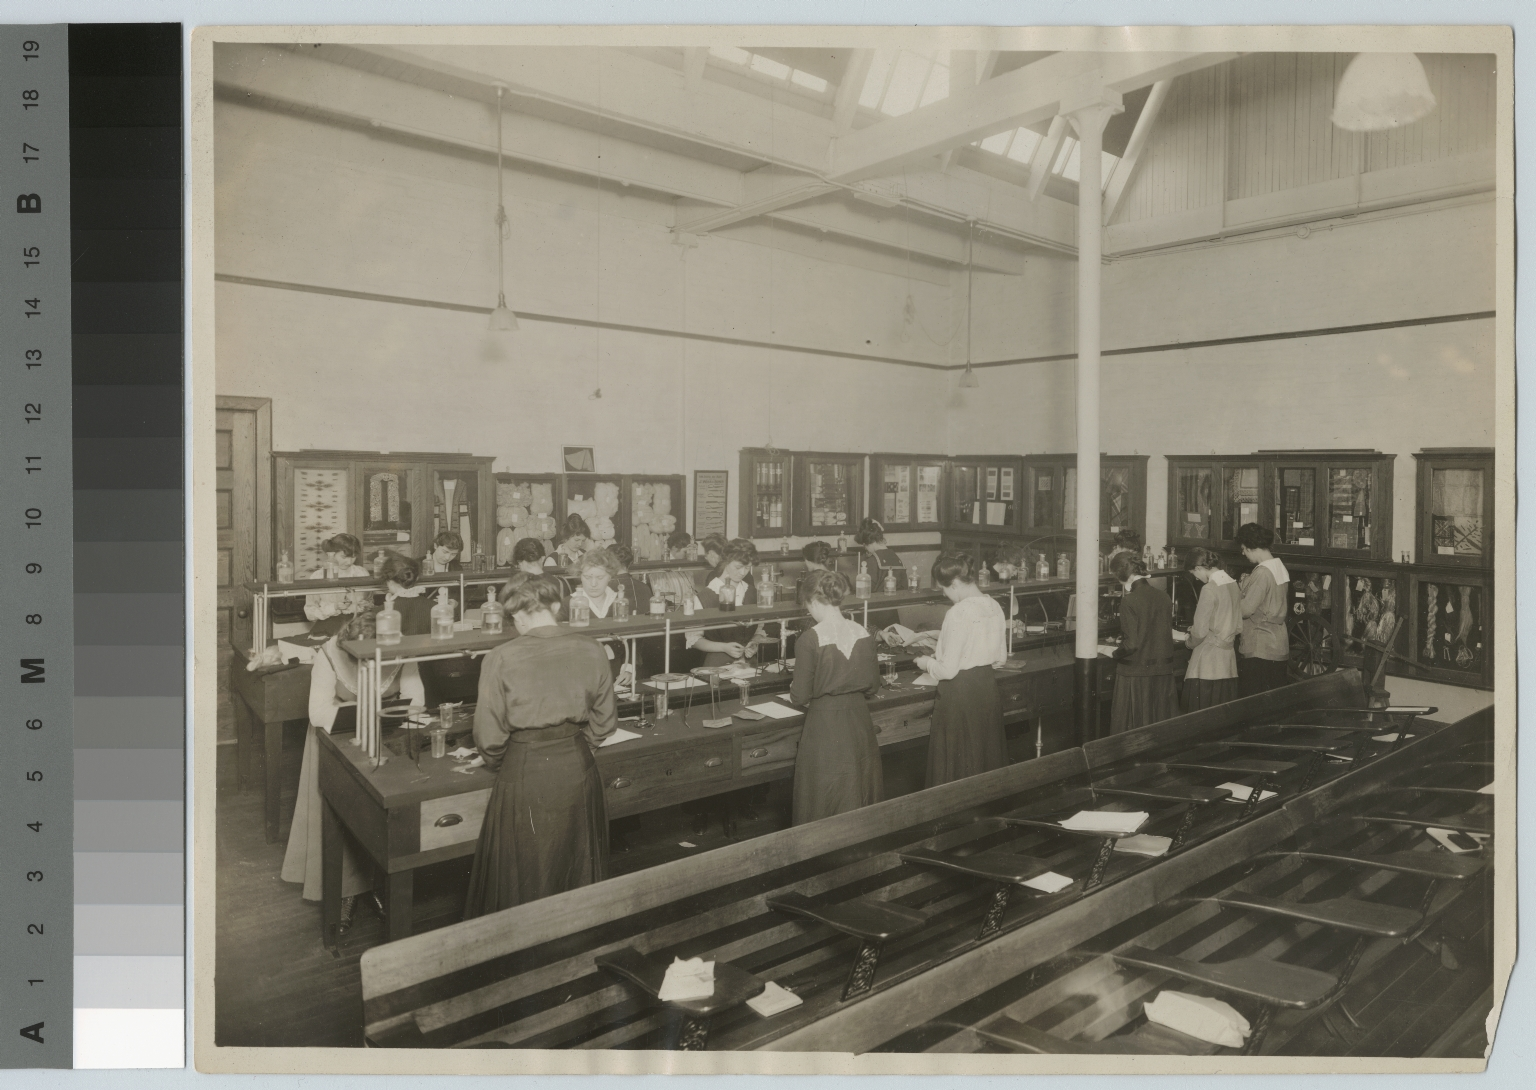 Women in textile laboratory, Department of Domestic Science and Art, Rochester Athenaeum and Mechanics Institute. [1910-1920]